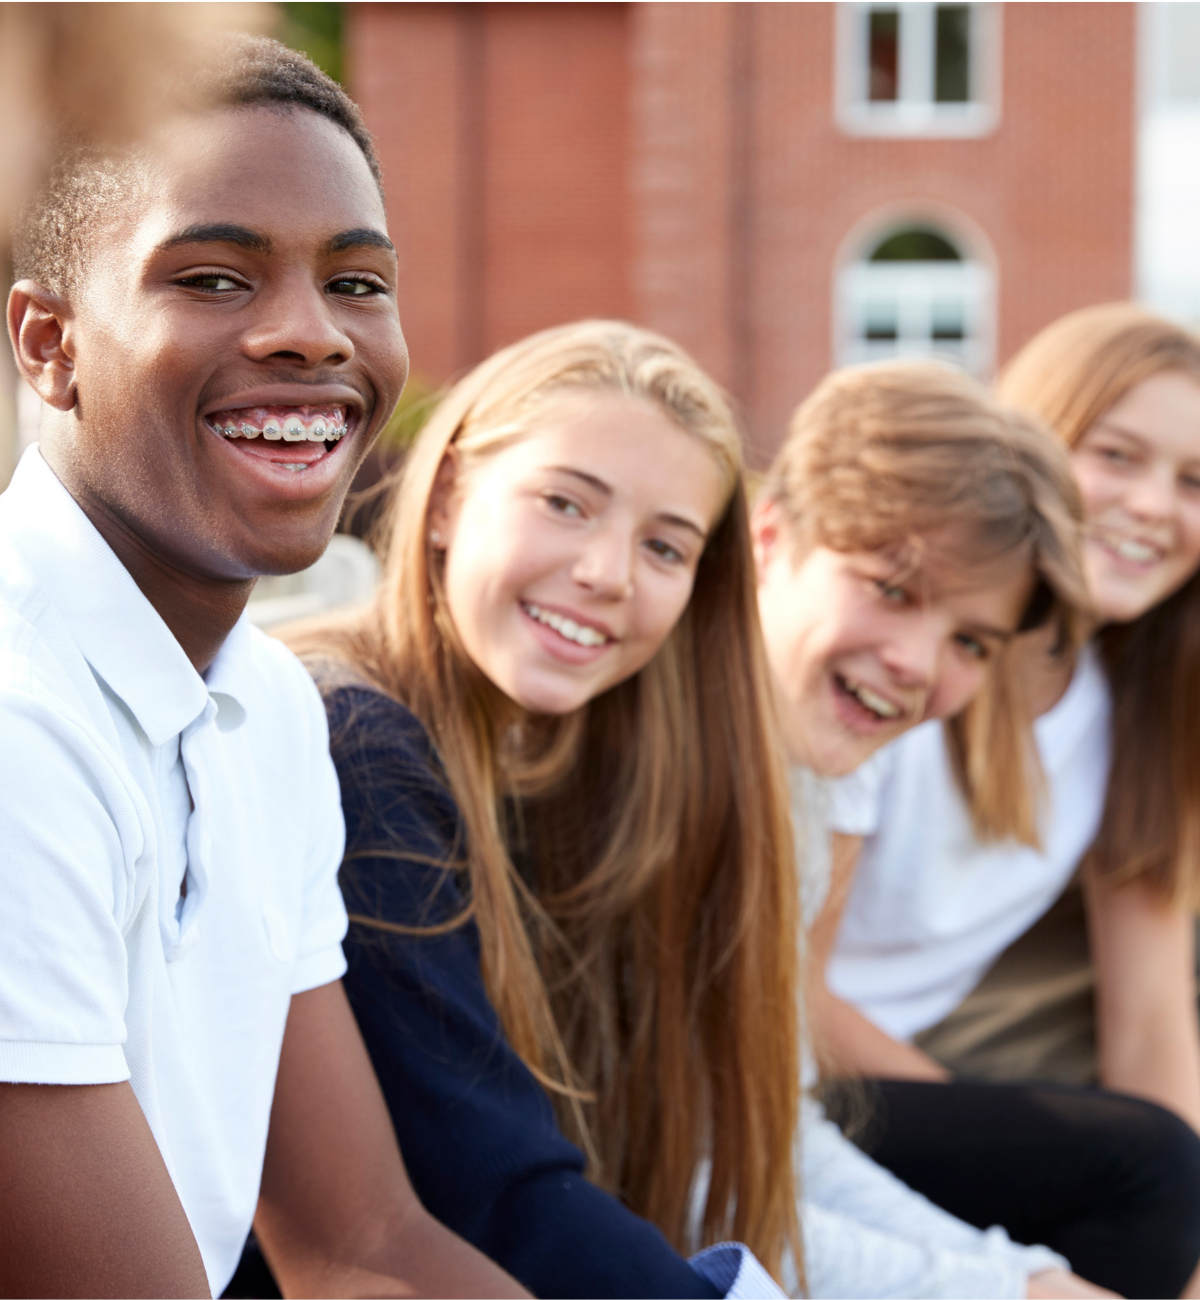 Group of smiling teens in a line